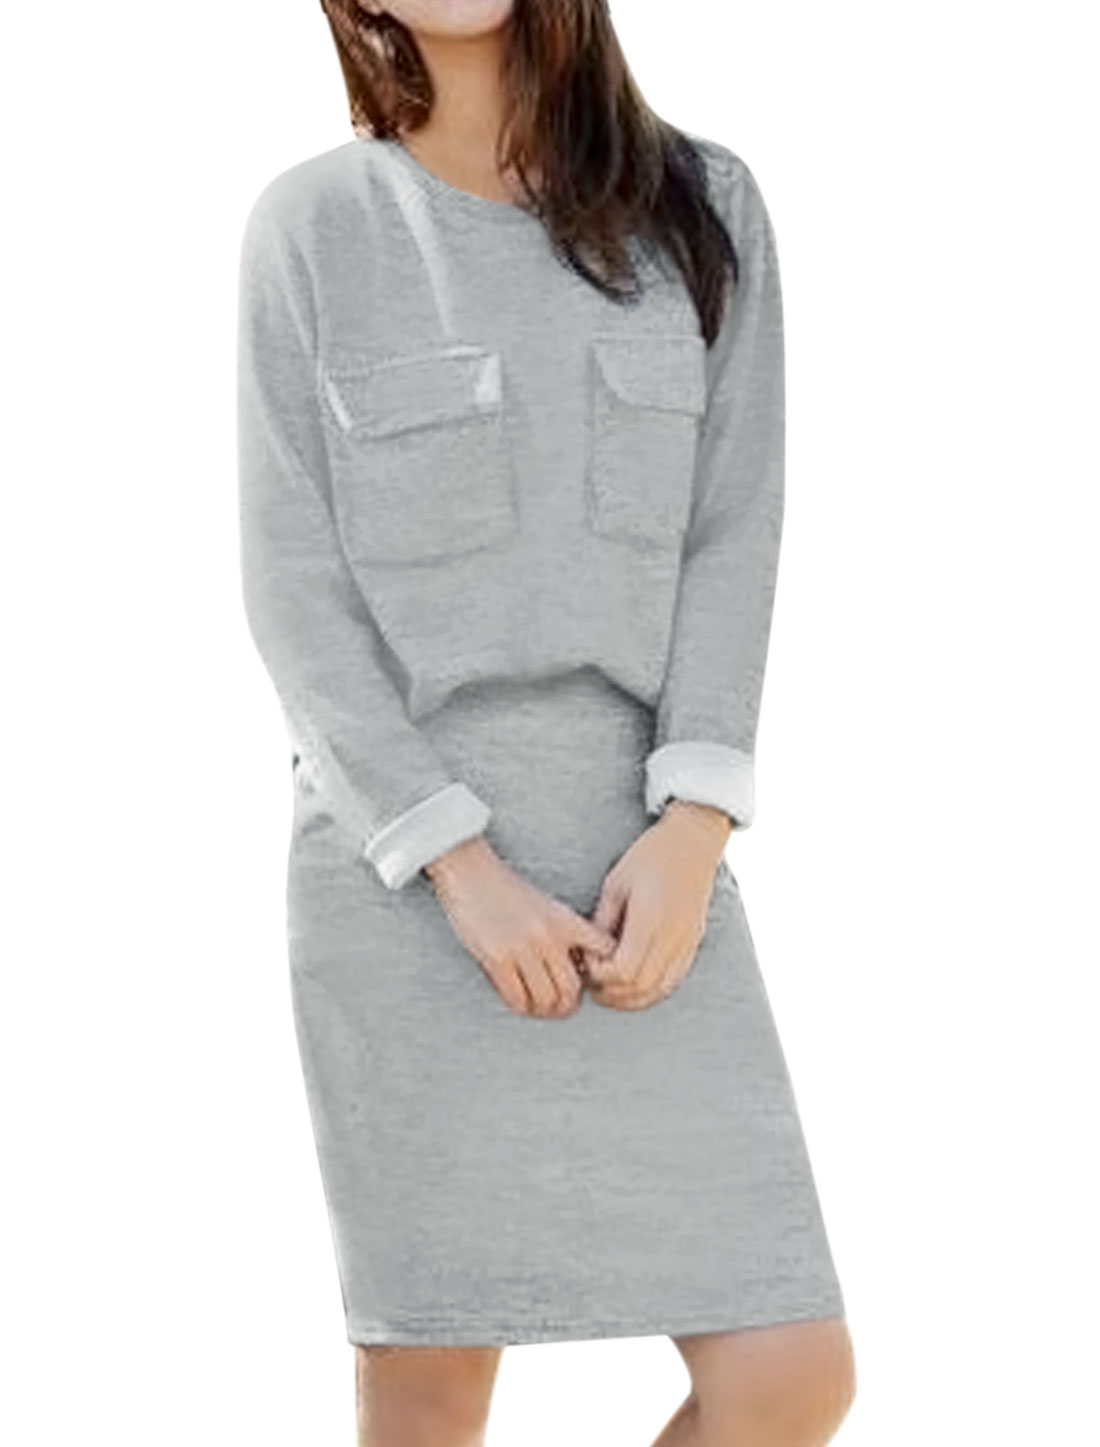 Women Flap Pockets Loose Top w High Waist Straight Skirt Sets Gray XS